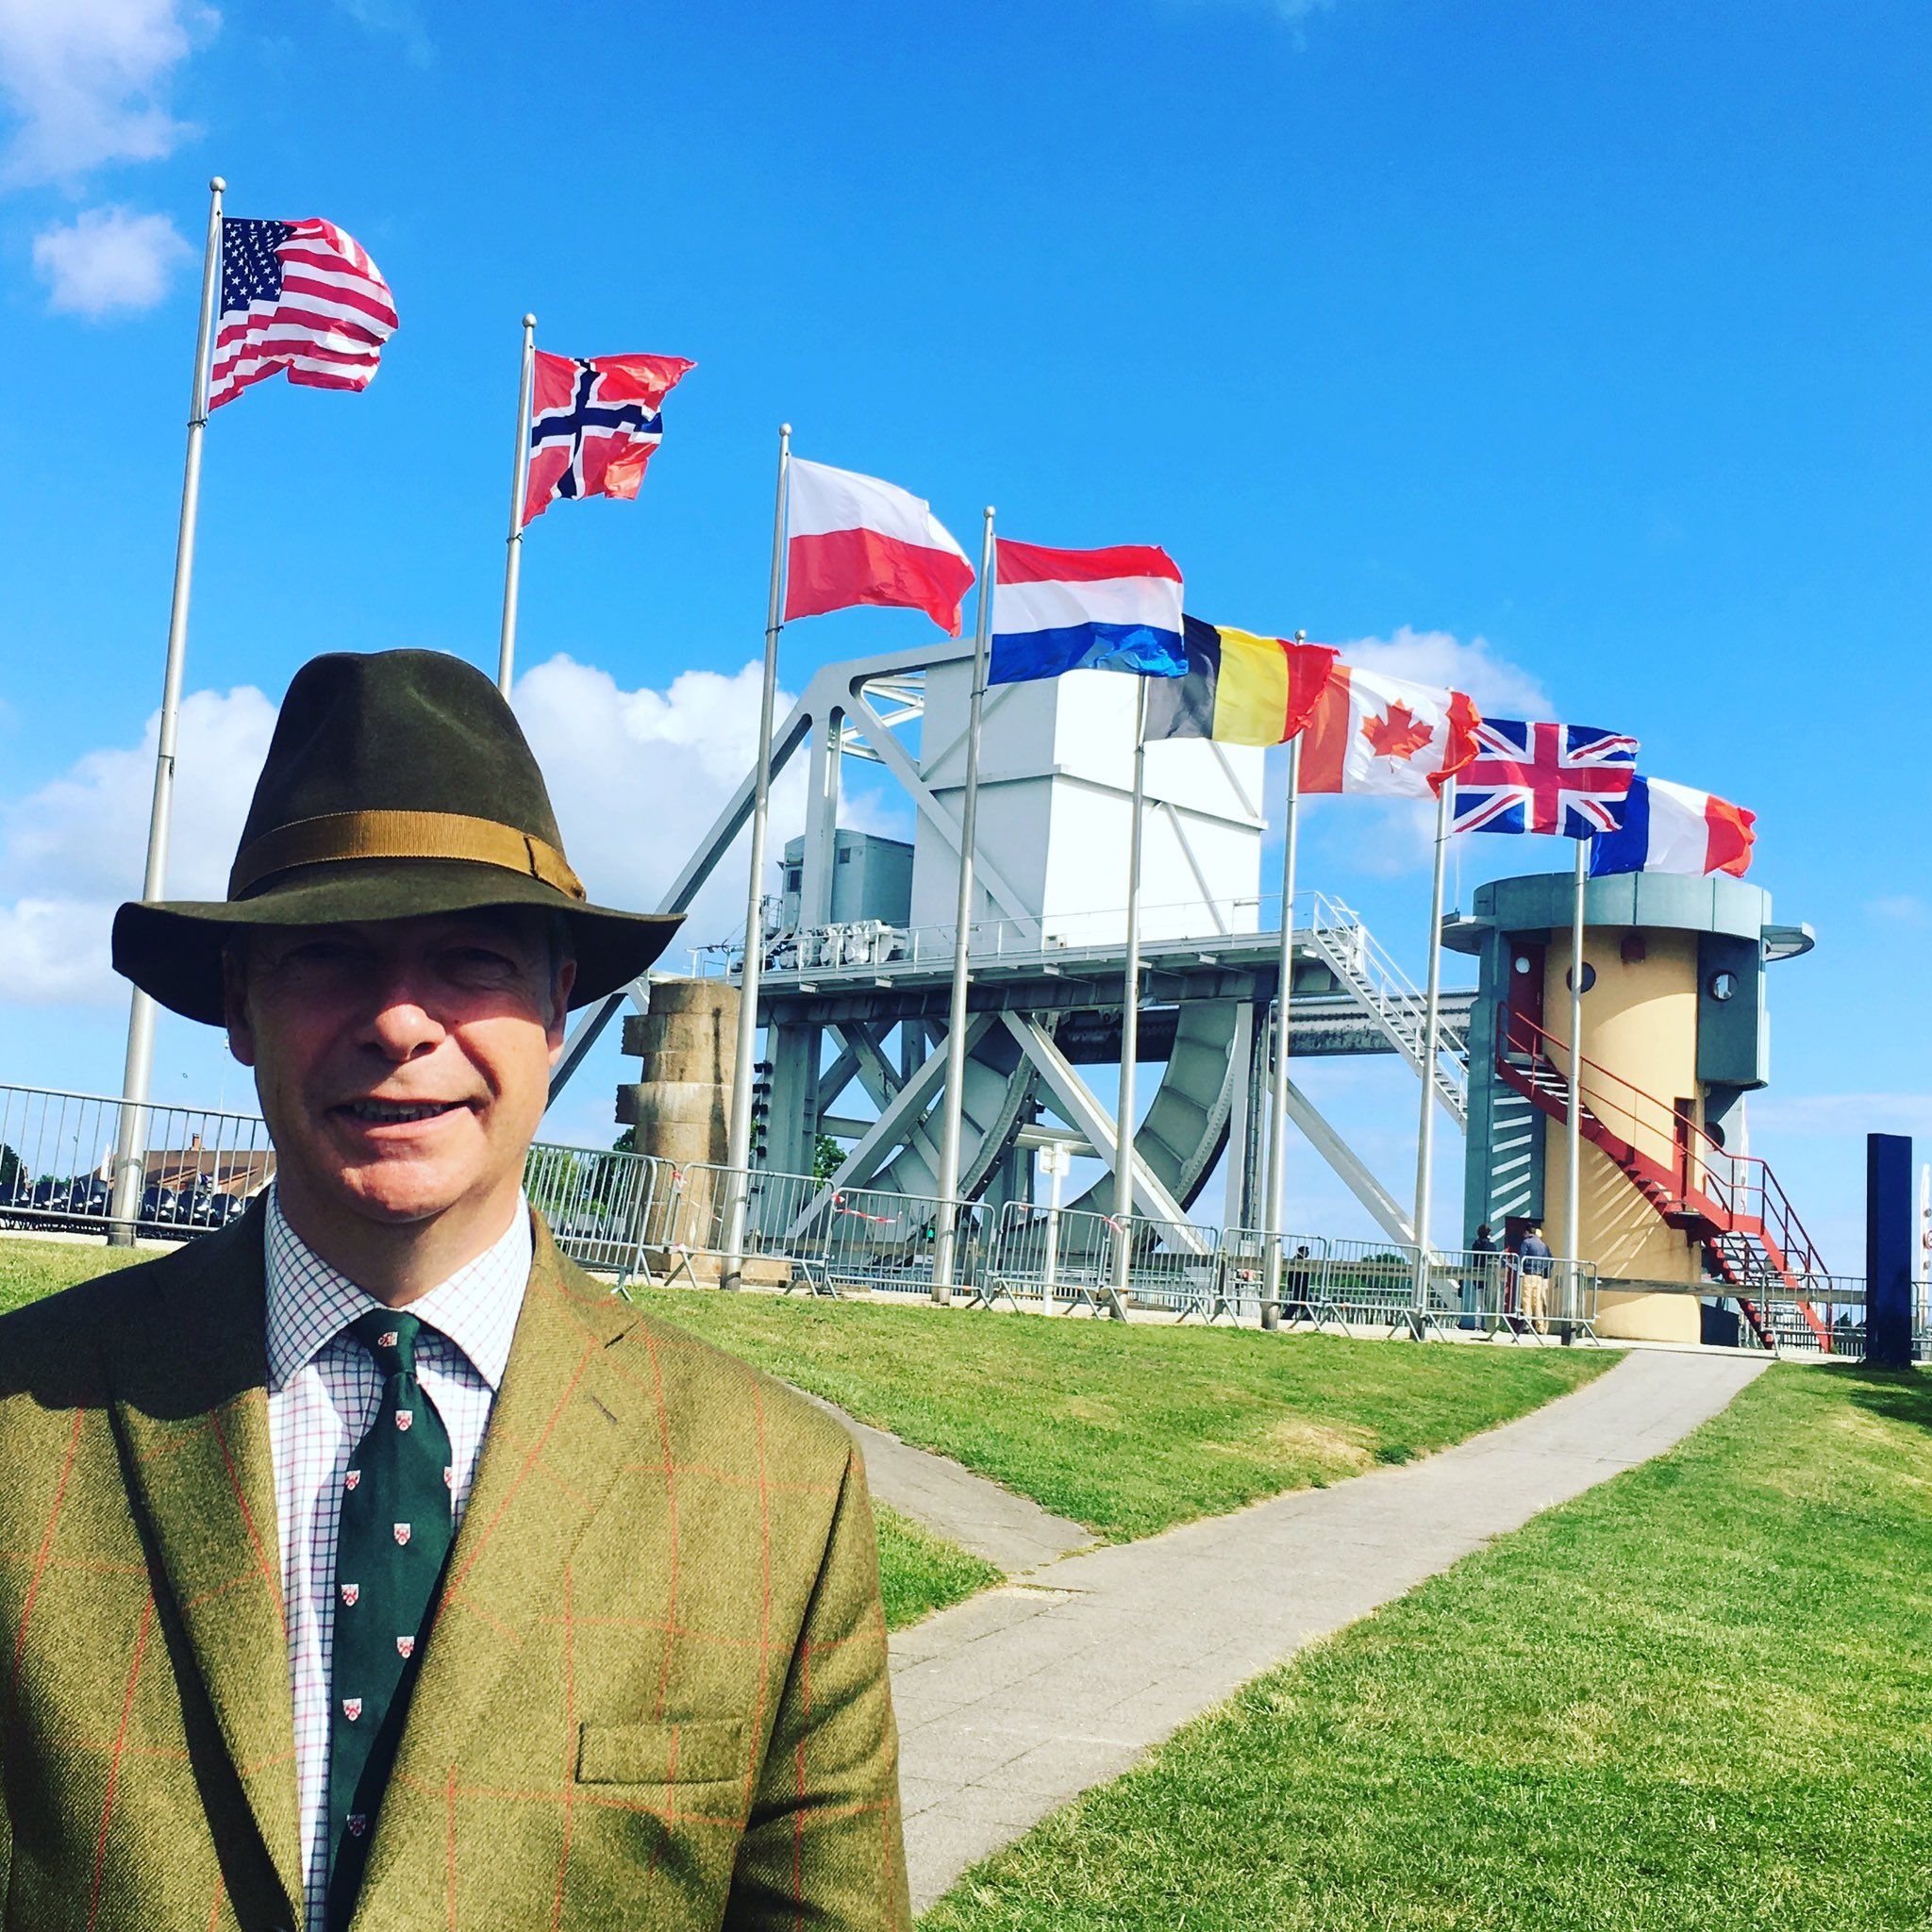 At Pegasus Bridge for the 73rd anniversary of the D-Day landings, remembering the bravery shown on that day. https://t.co/Lyi86E4TGZ